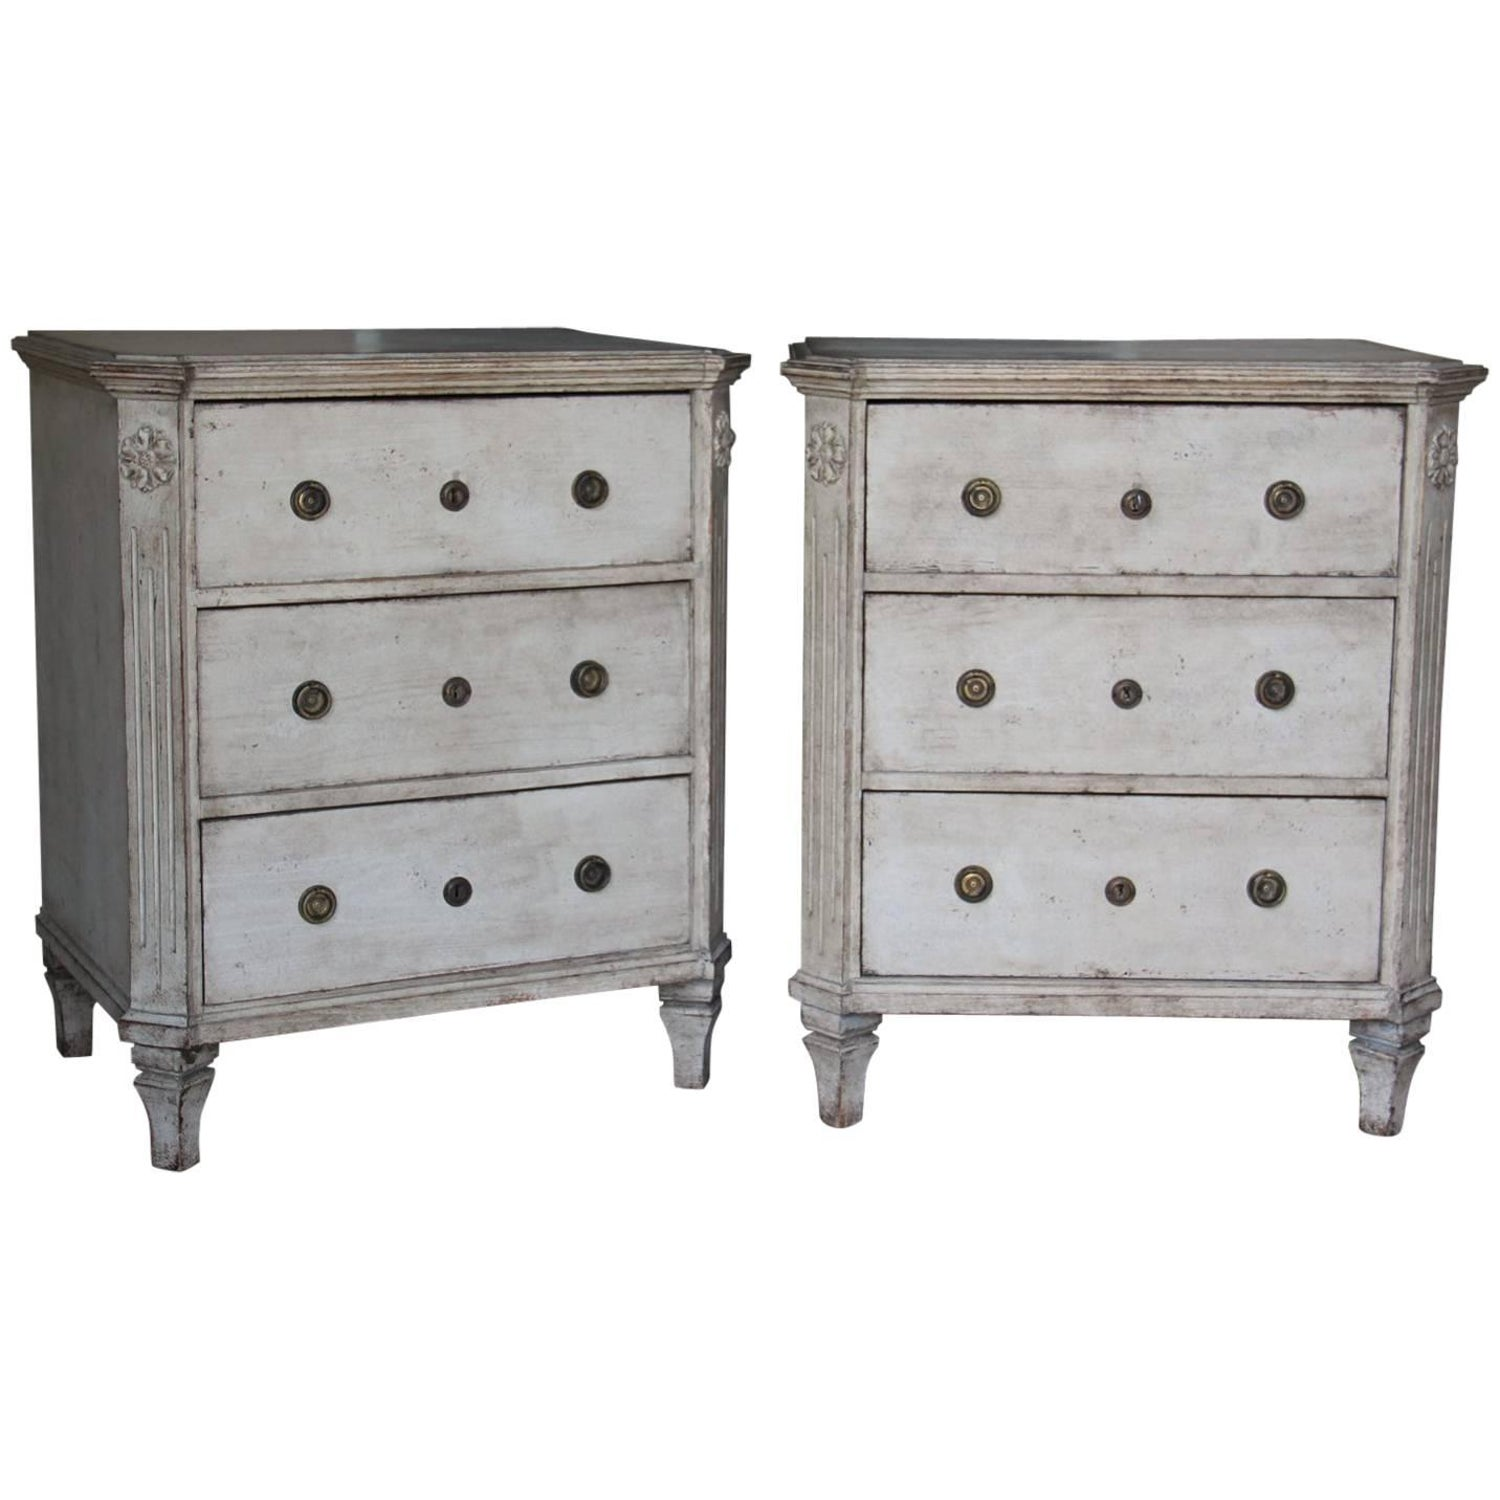 19th century swedish gustavian style pair of painted bedside chests - Gustavian Style Furniture